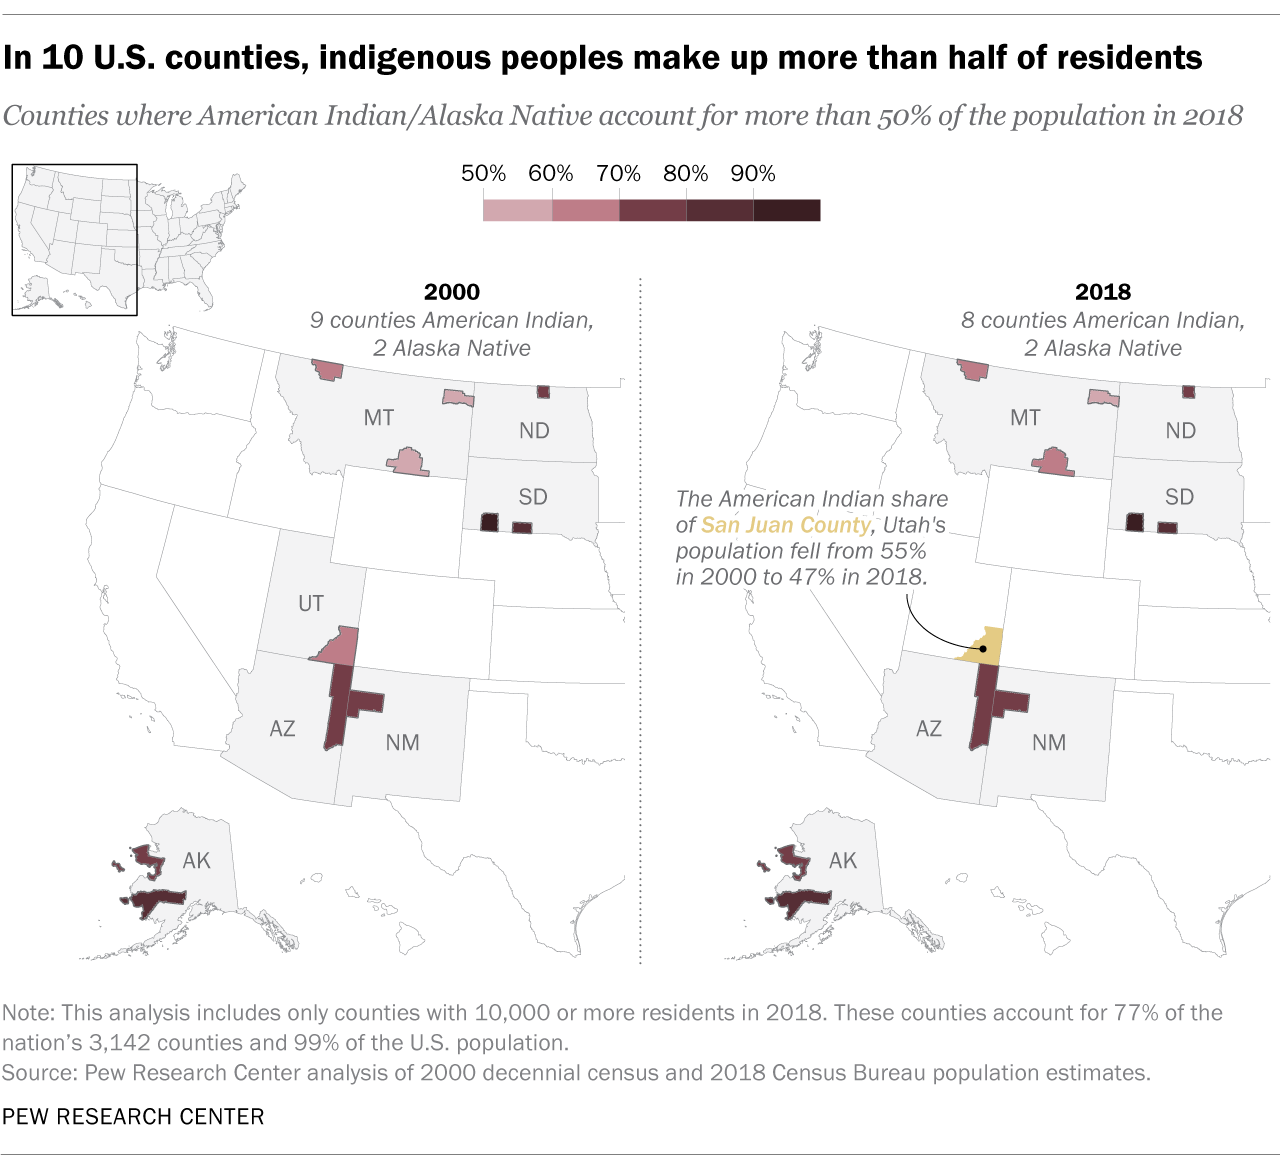 In 10 U.S. counties, indigenous people make up more than half of residents